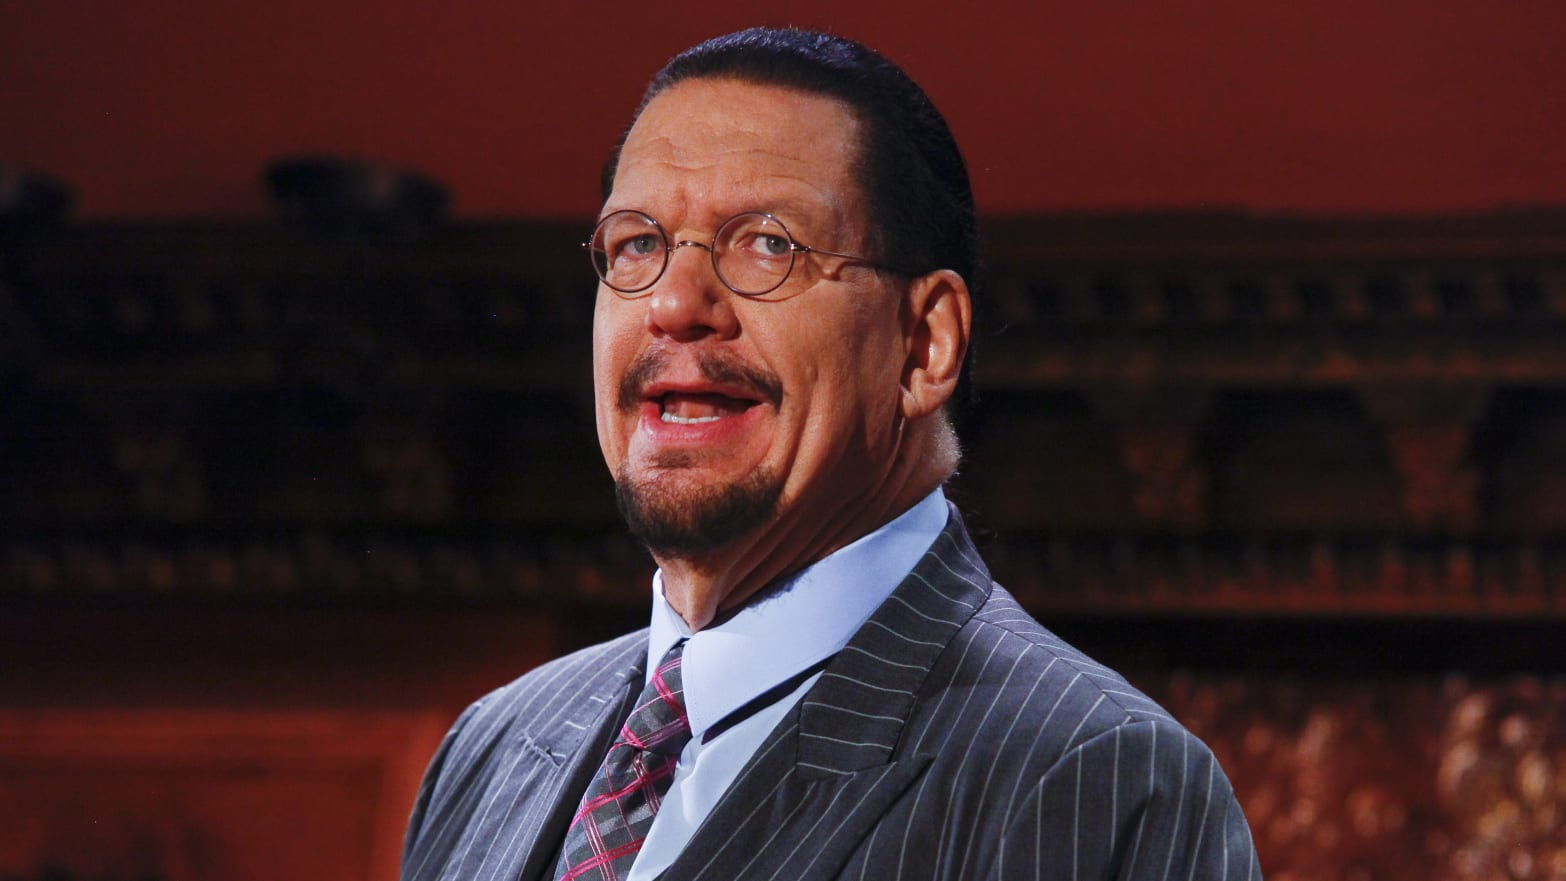 Penn Jillette Is Against Clinton and Trump—and Dying While